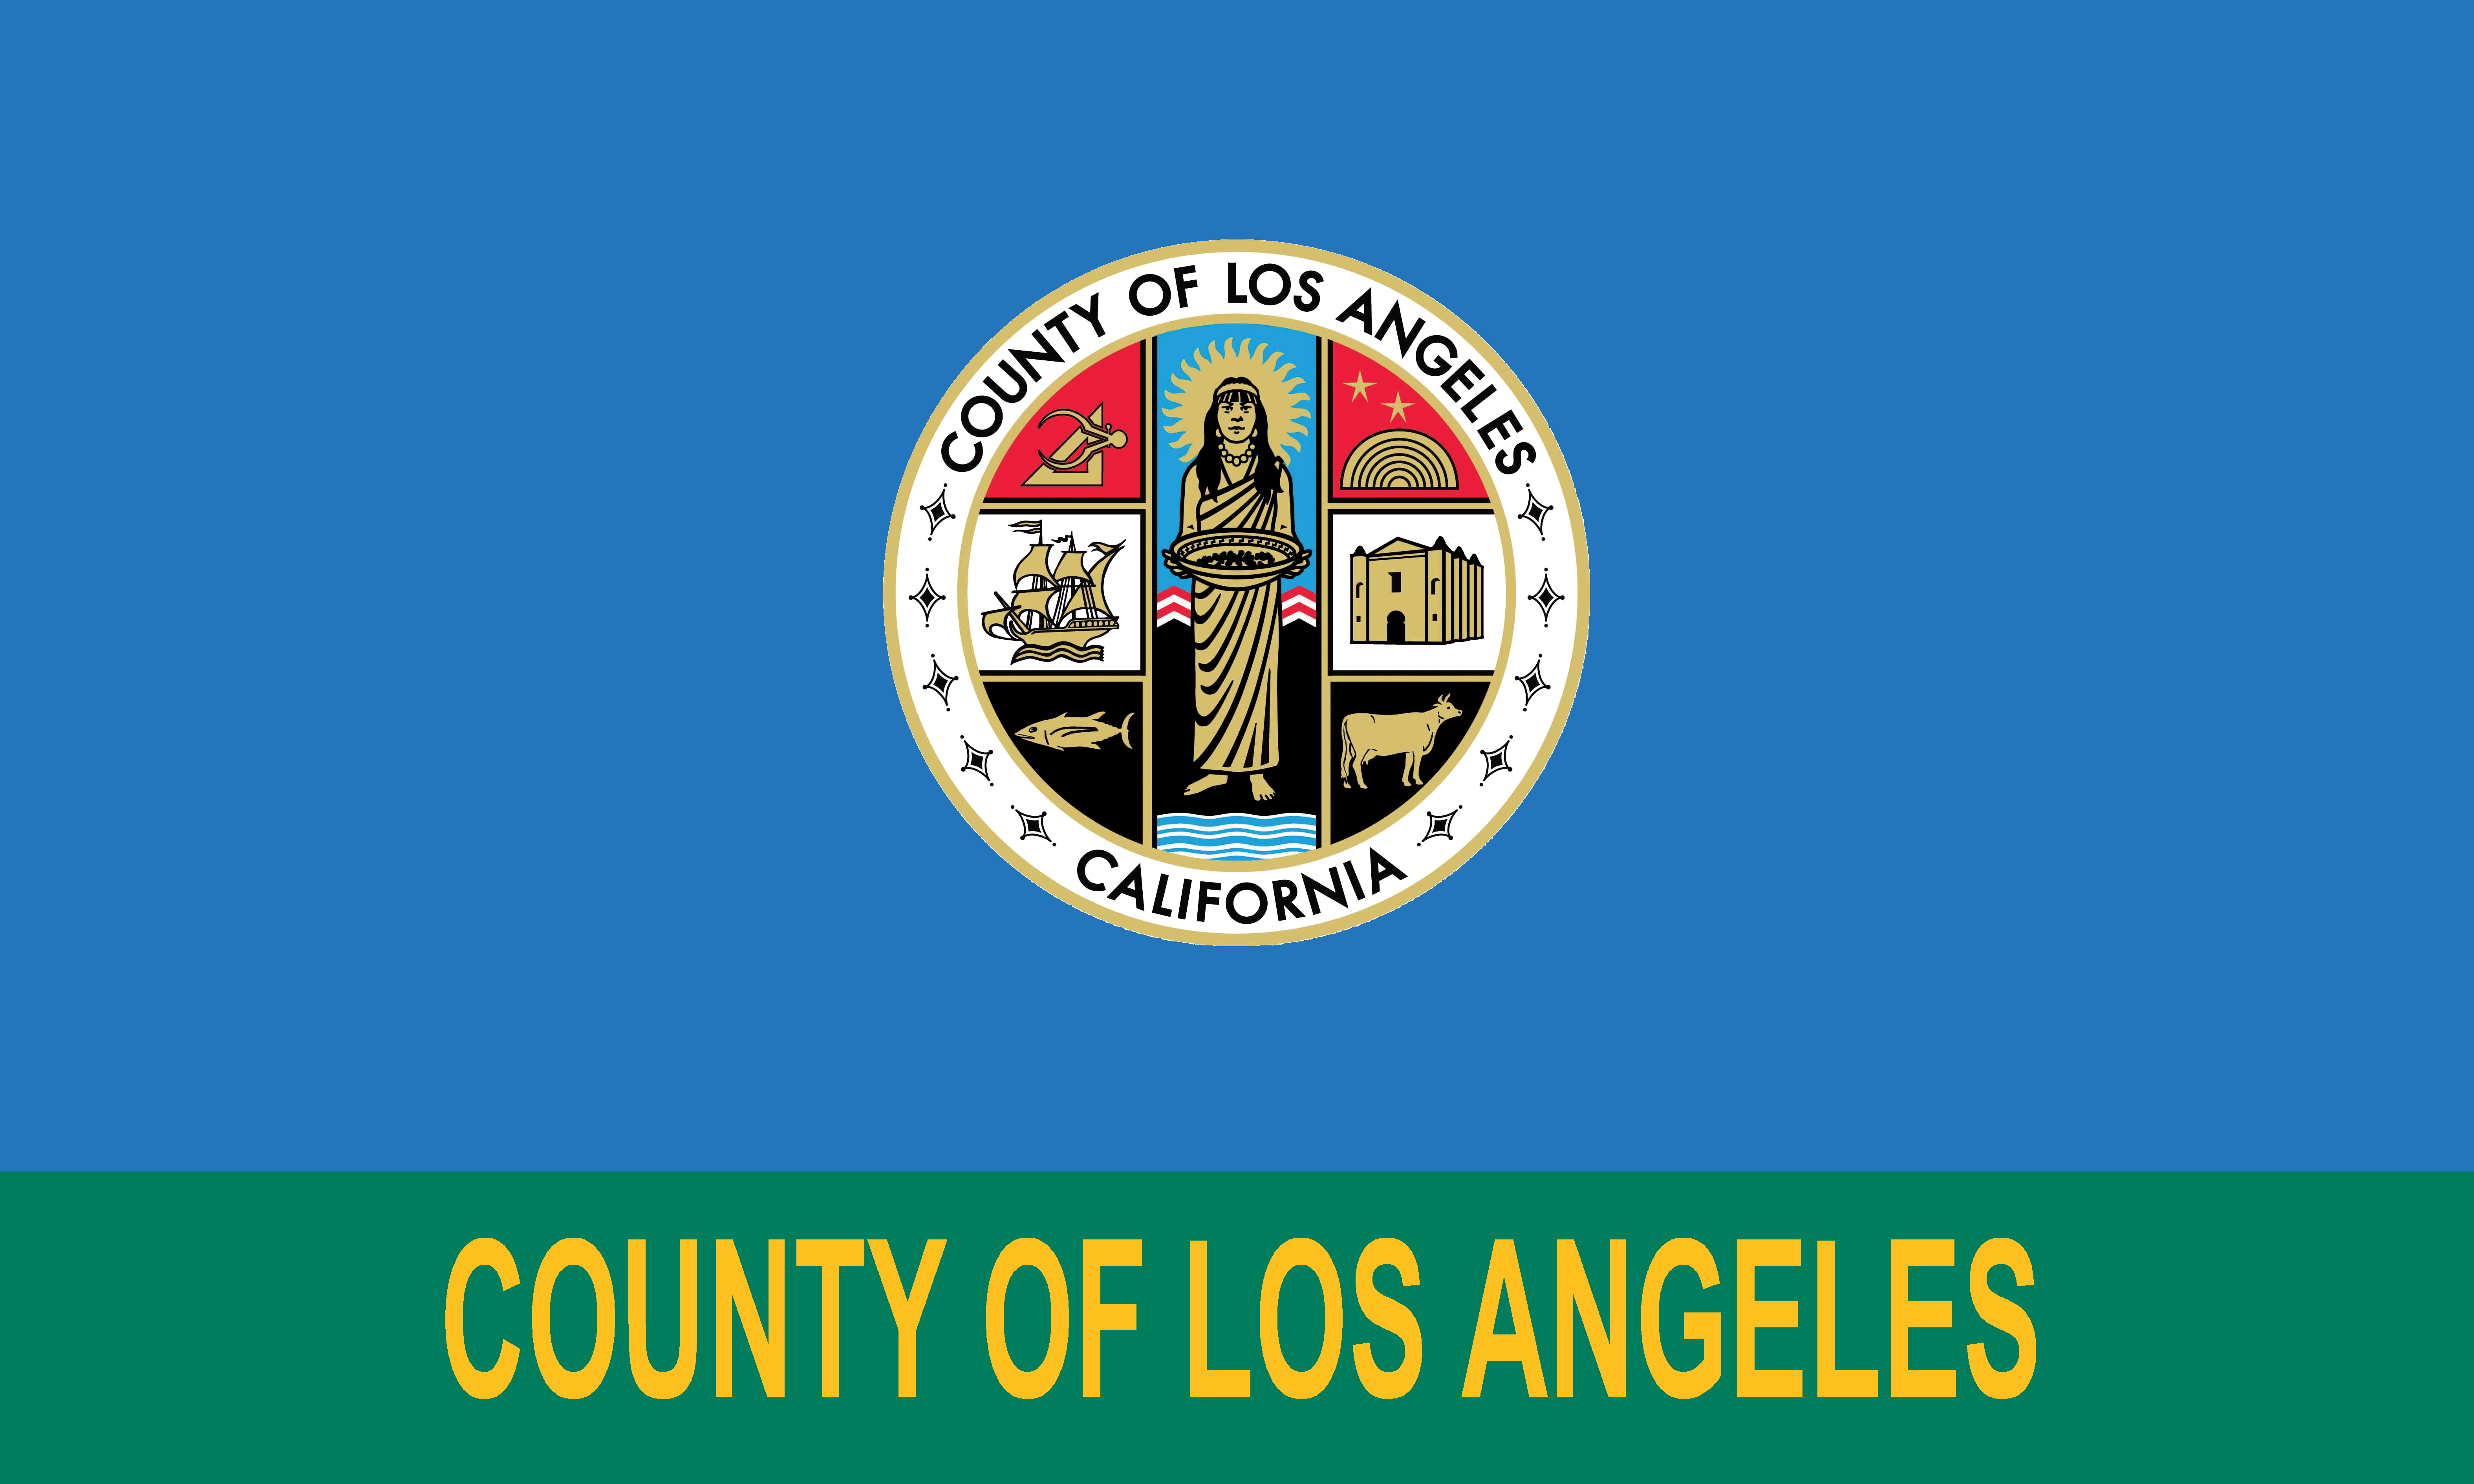 Los Angeles County, California